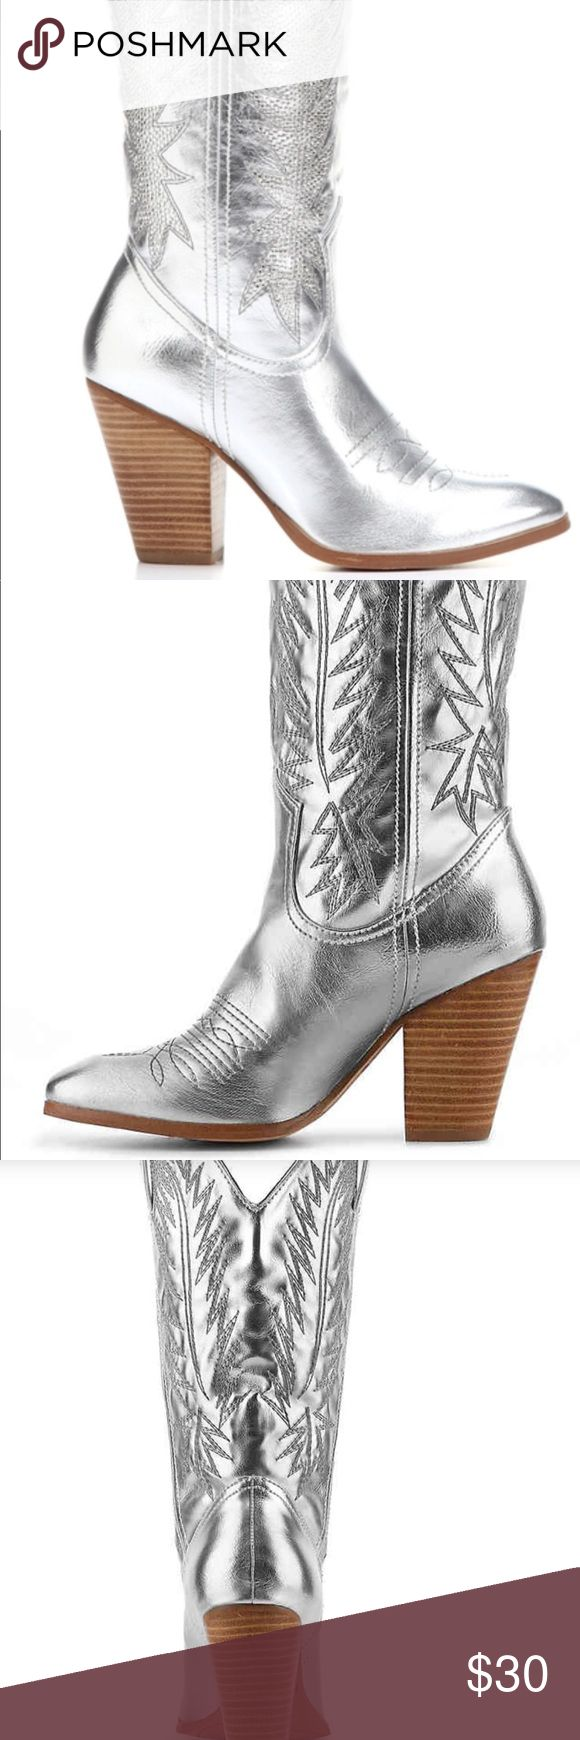 Silver Cowboy Boots by Mirada Lambert  Size 9 These are silver cowboy boots by Miranda by Miranda Lambert. Boots and bling will add glam to any outfit. Size 9 New, no Box. 3 ½ inch heel Miranda by Miranda Lambert Shoes Heeled Boots